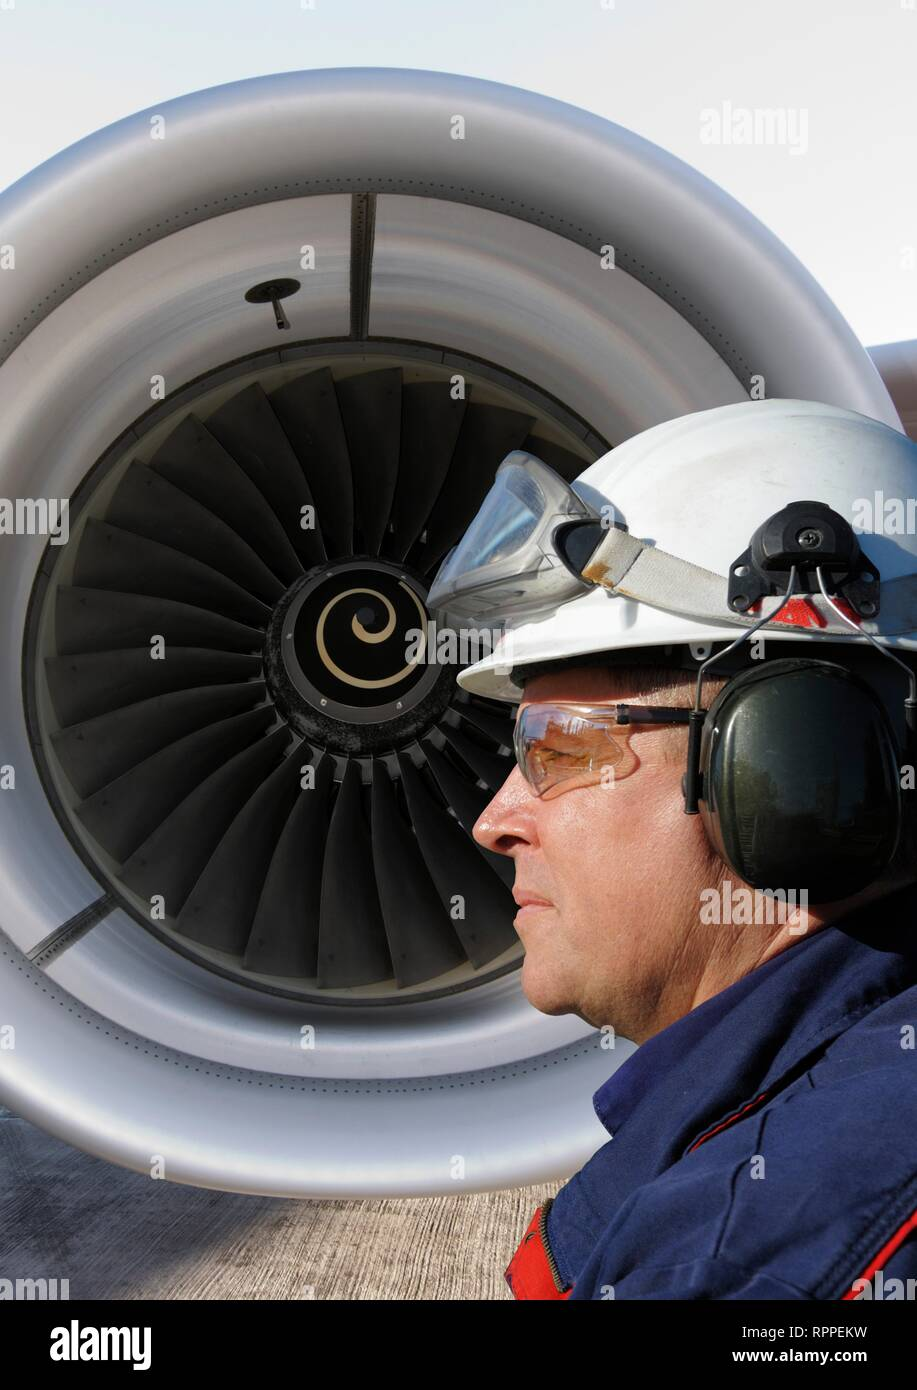 Airplane mechanic standing in front of a jumbo jet's engine. - Stock Image